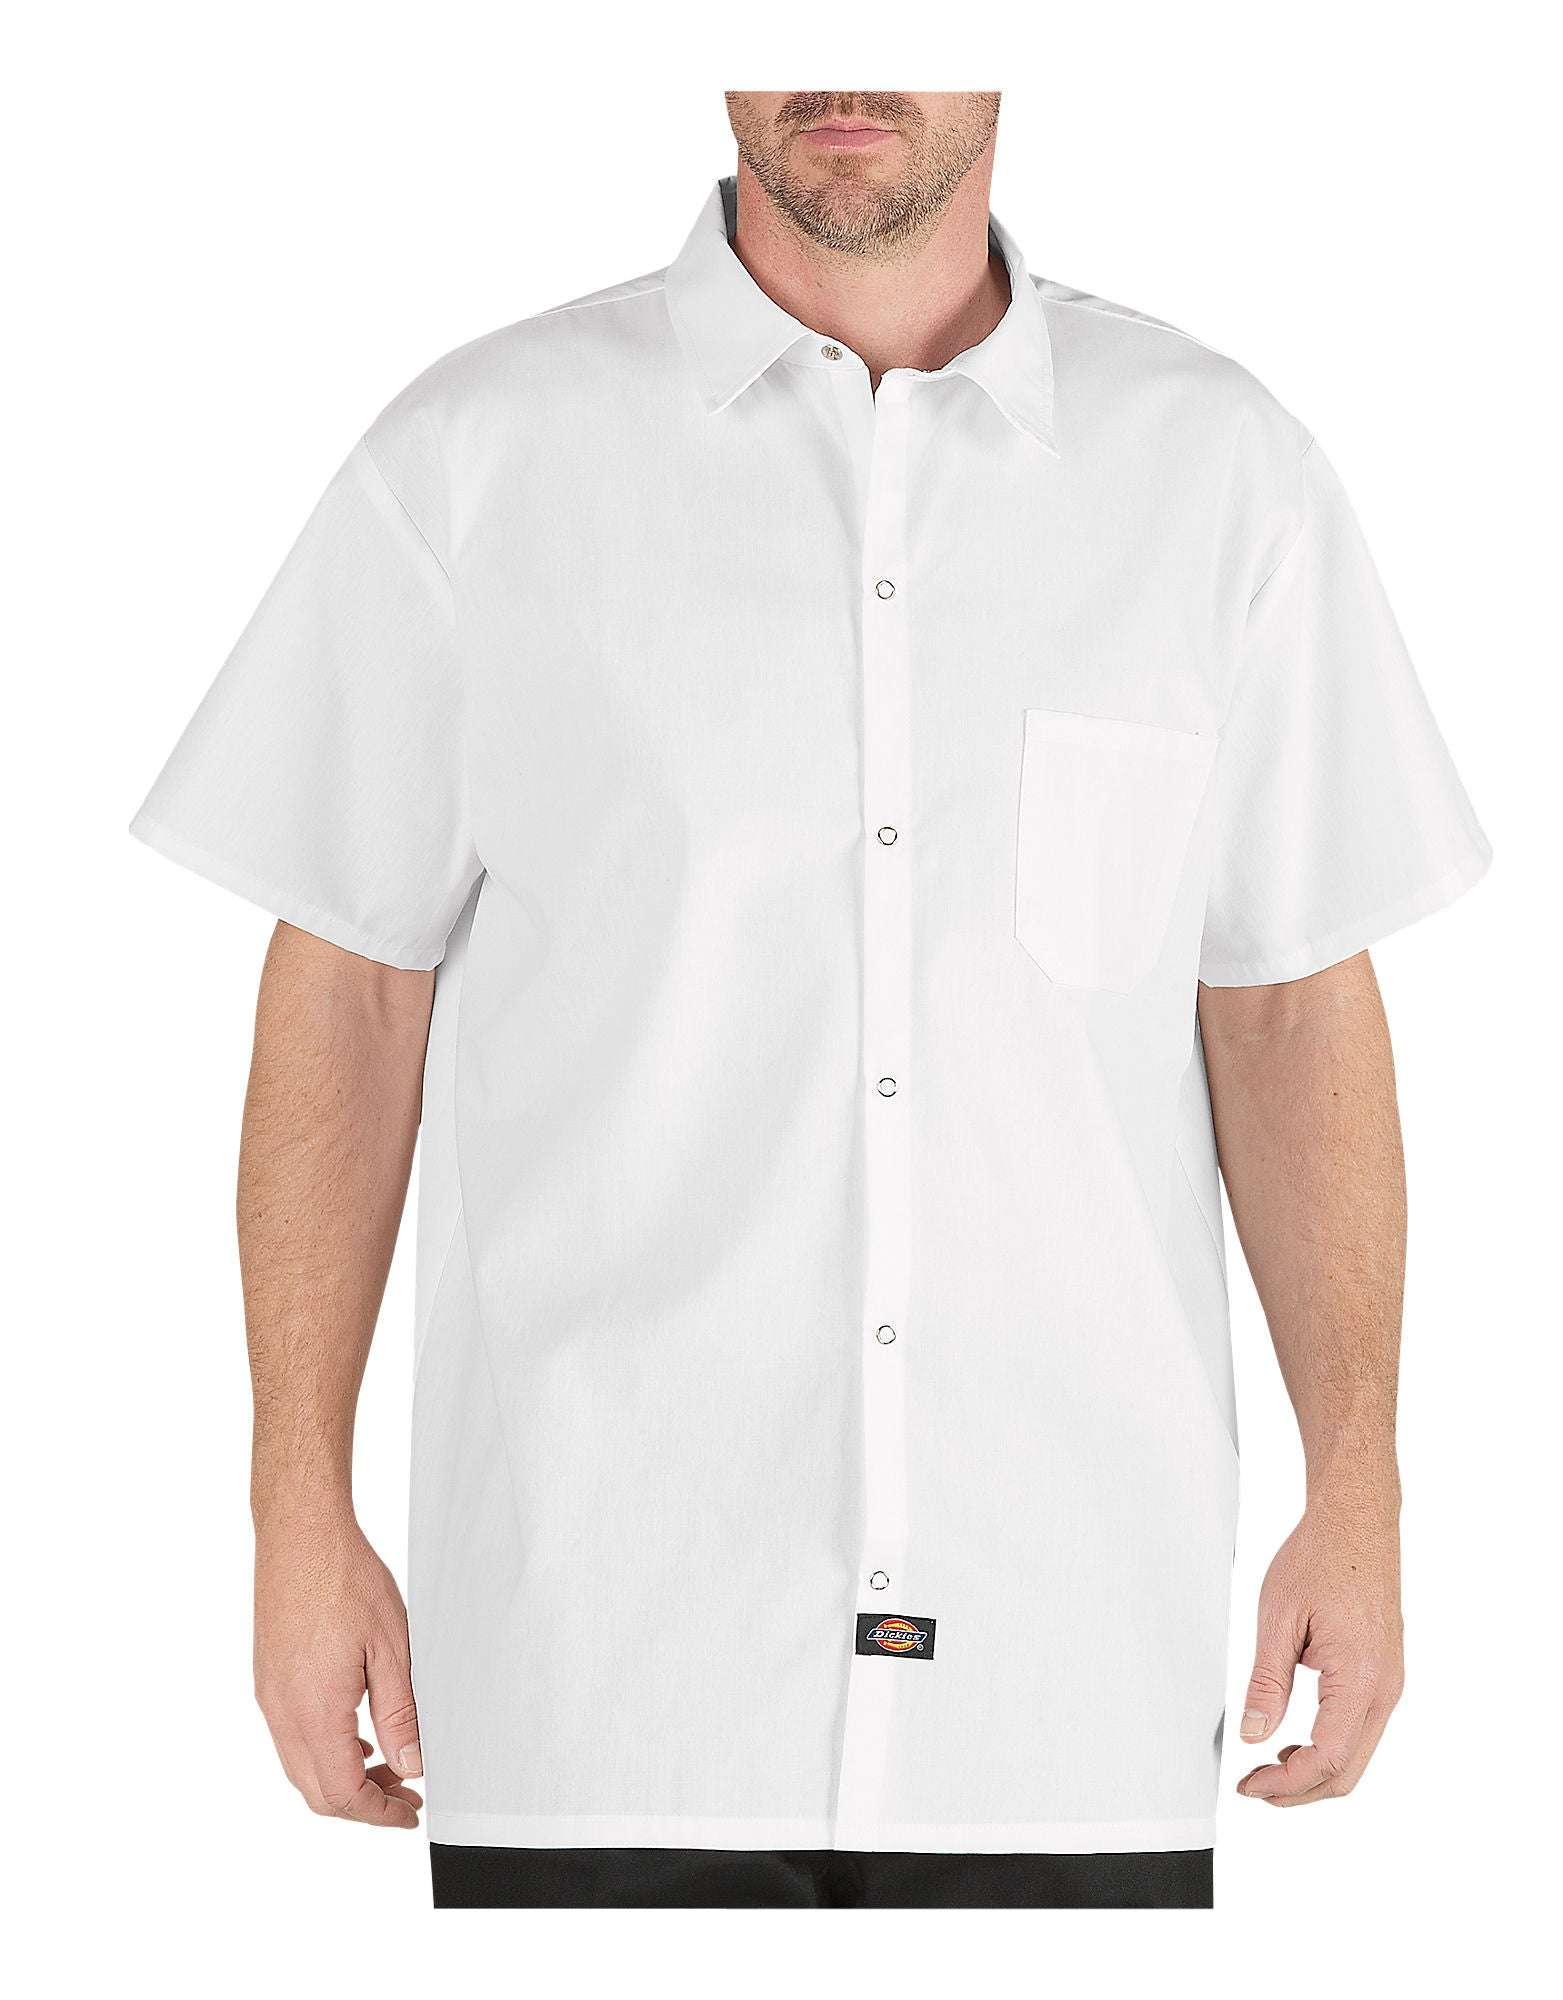 30d159ef63 Dickies Cook Unisex Shirt with Chest Pocket – ValueMaxx